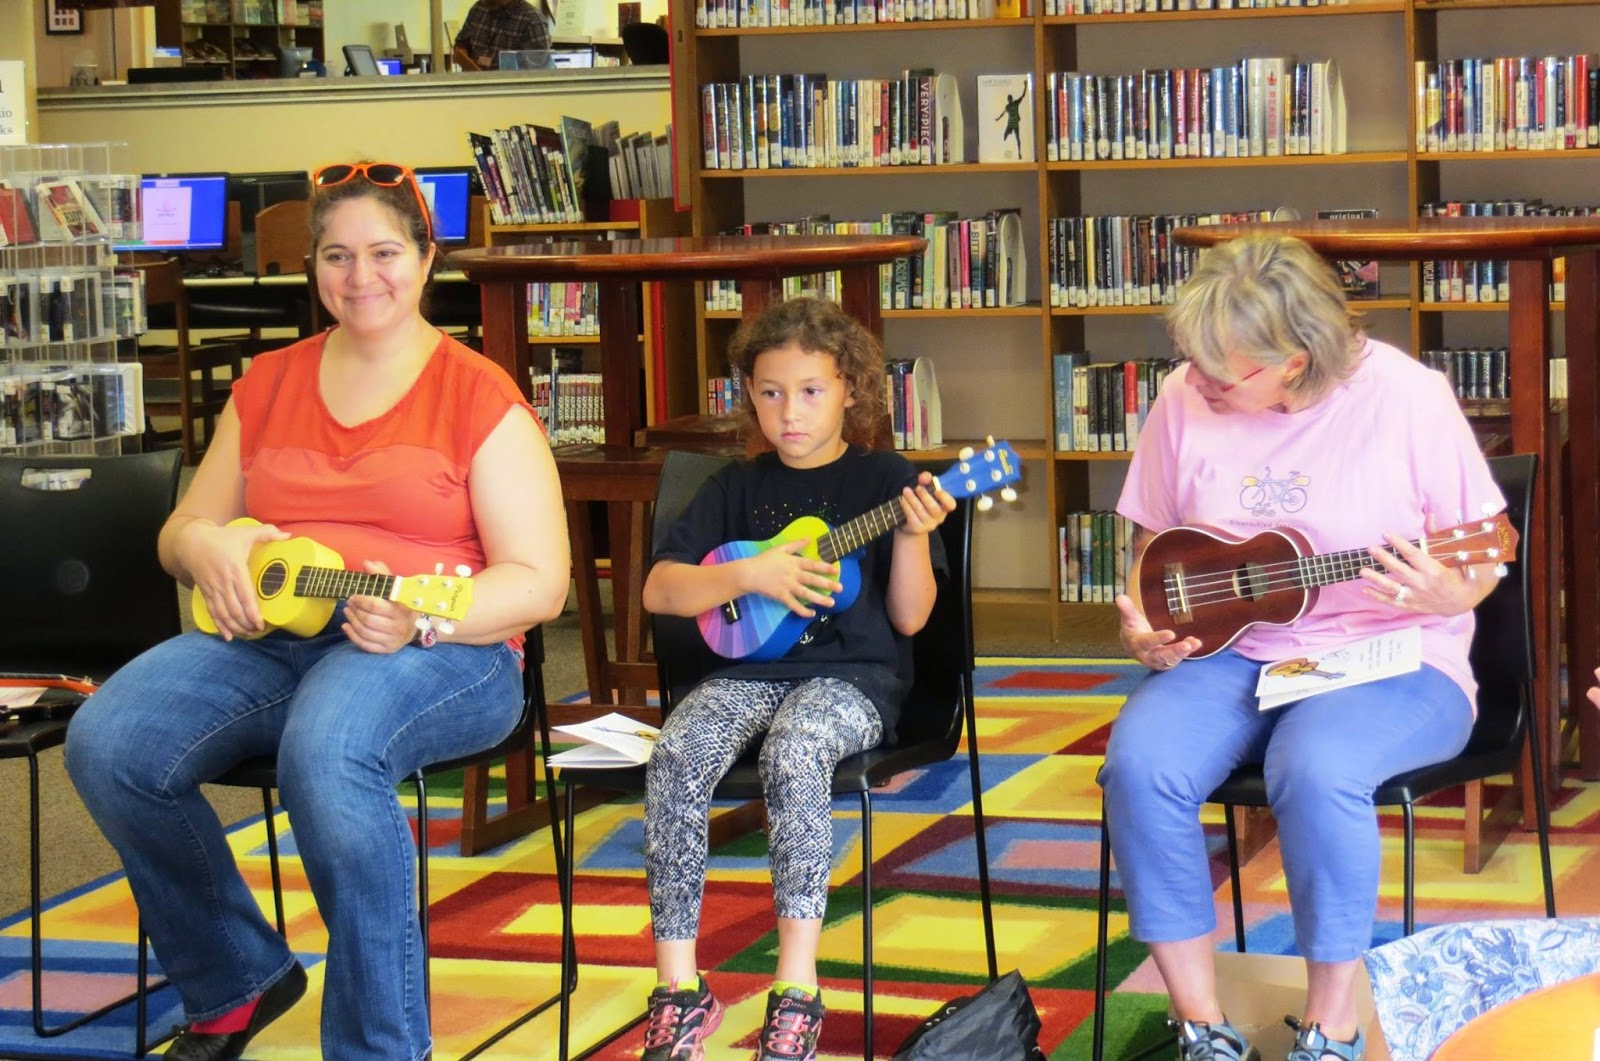 two adults and a child playing ukuleles